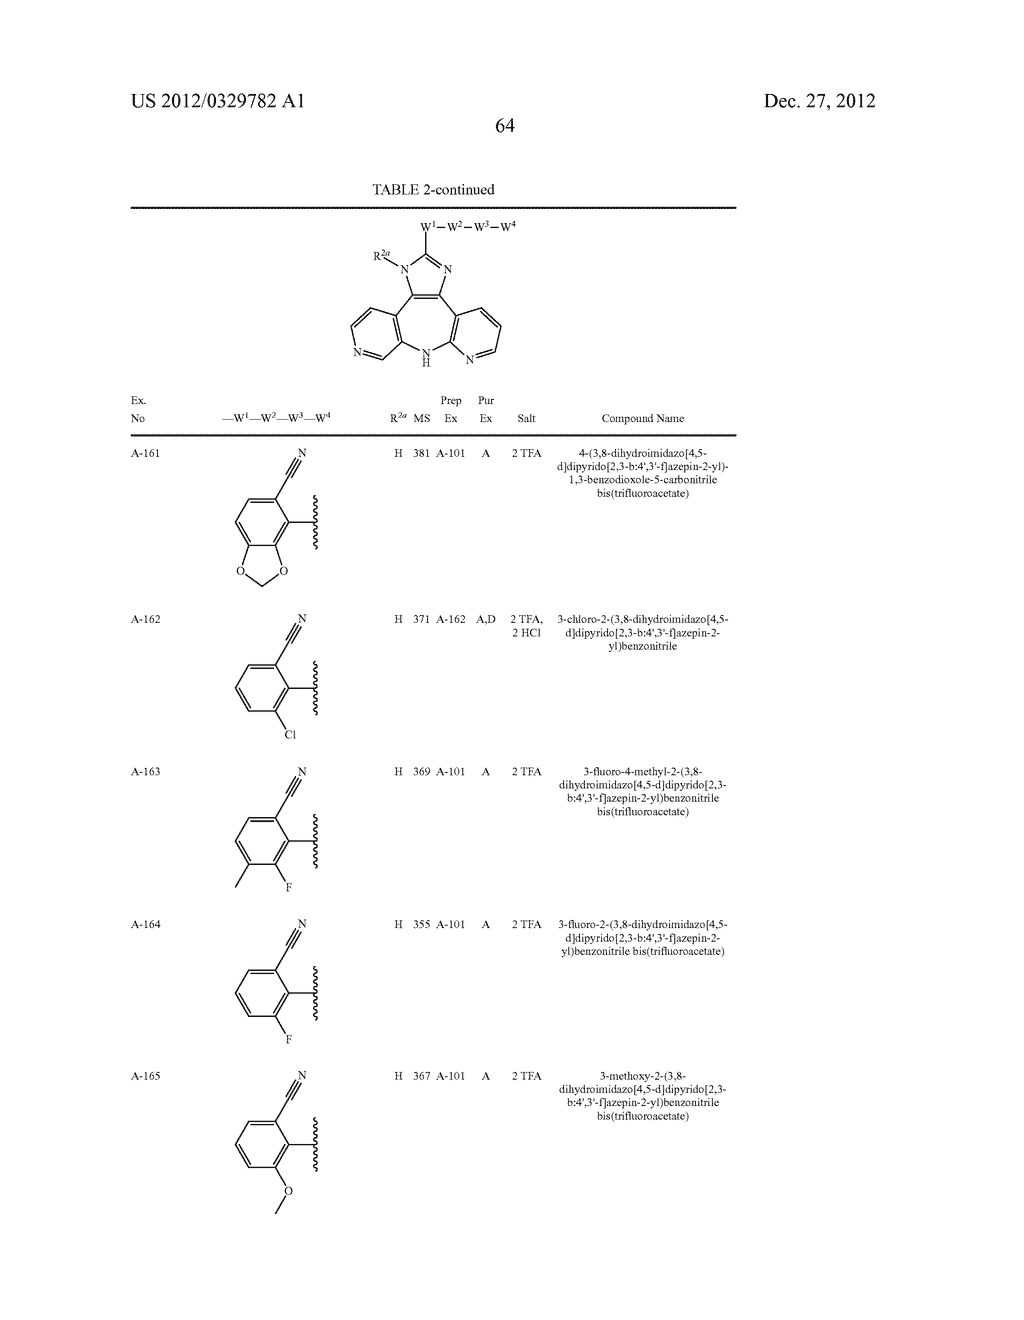 AZEPINE INHIBITORS OF JANUS KINASES - diagram, schematic, and image 65